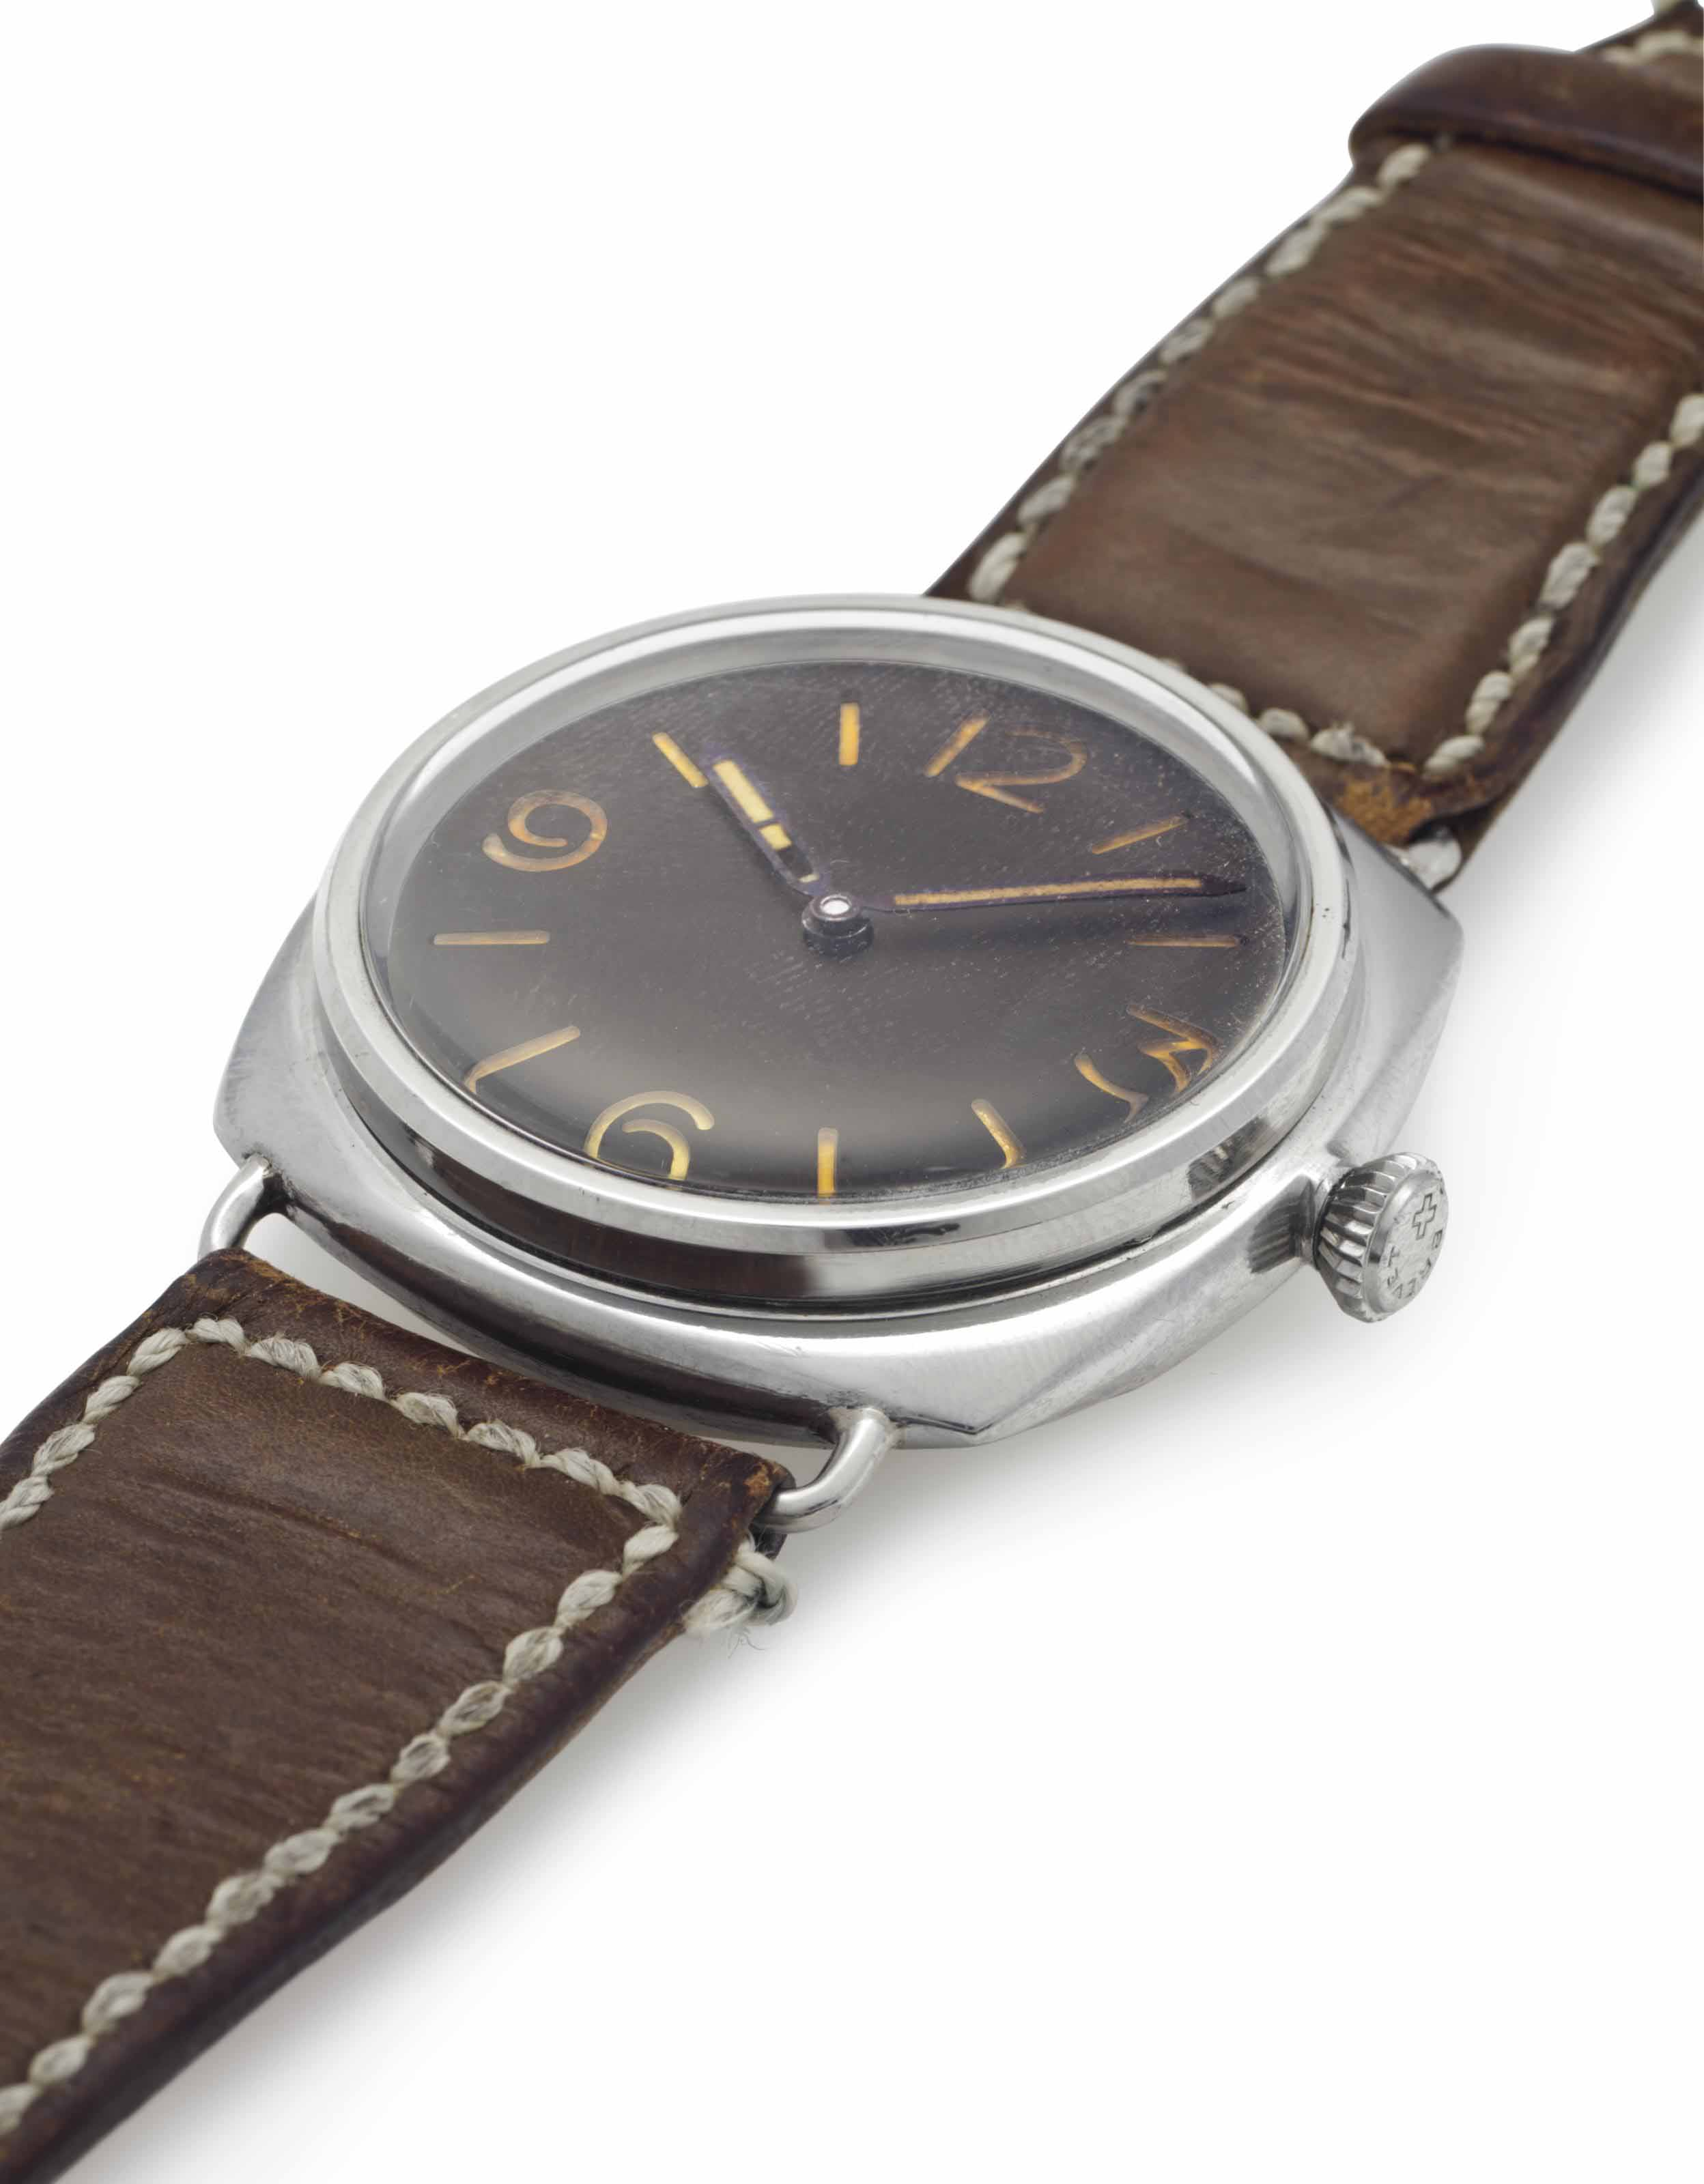 Rolex and Panerai. An Early and Rare Stainless Steel Wristwatch